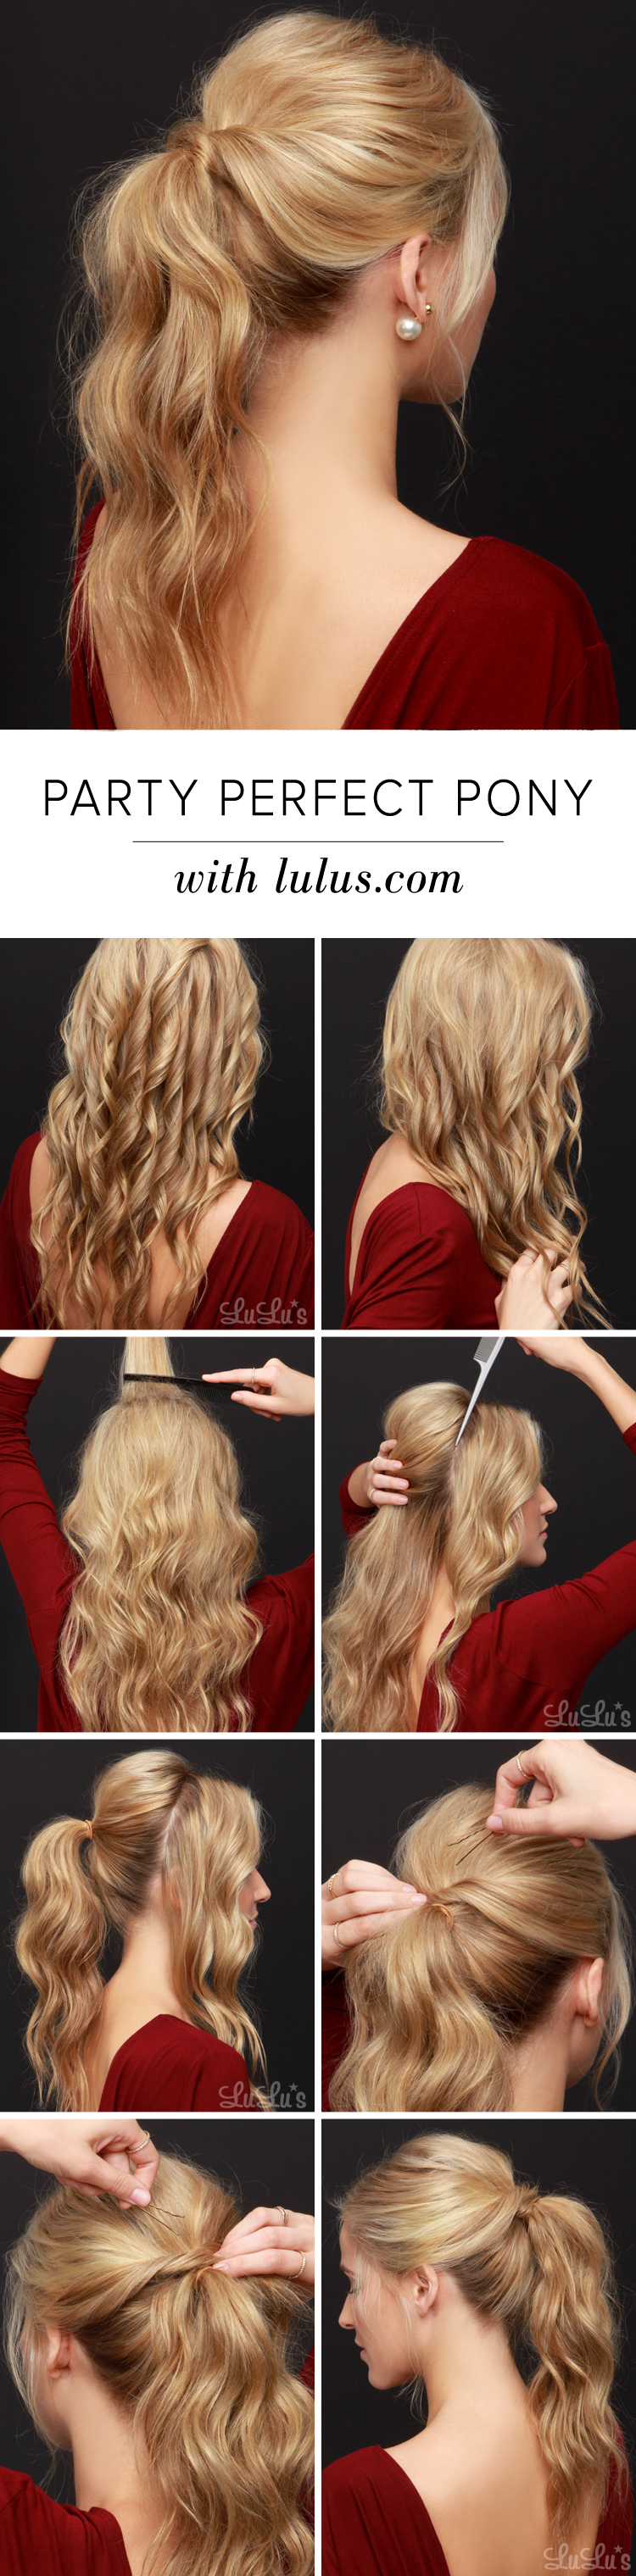 Lulus How To Party Perfect Ponytail Hair Tutorial Lulus